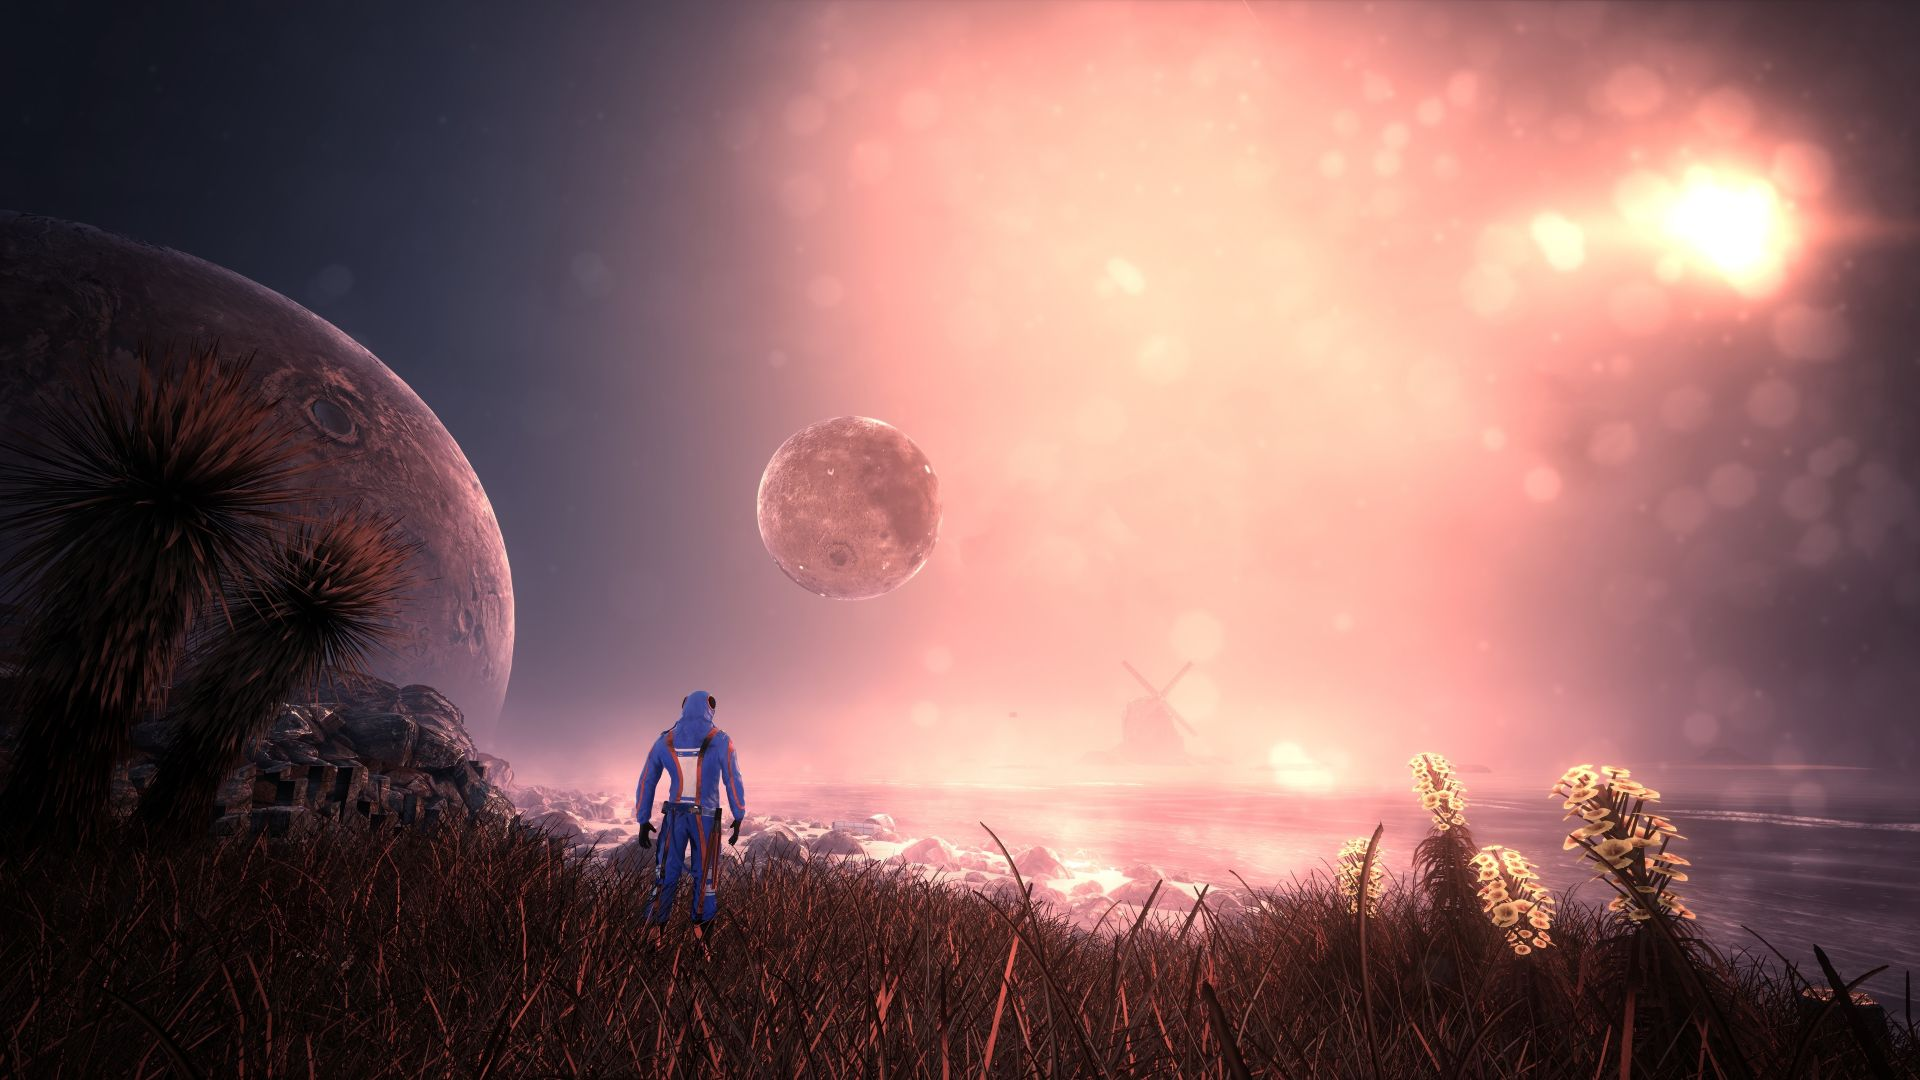 The Solus Project, Лучшие игры, ужасы, космос, фантастика, ПК, PC, Xbox One, The Solus Project, Best Games, horror, space, sci-fi, PC, Xbox One (horizontal)